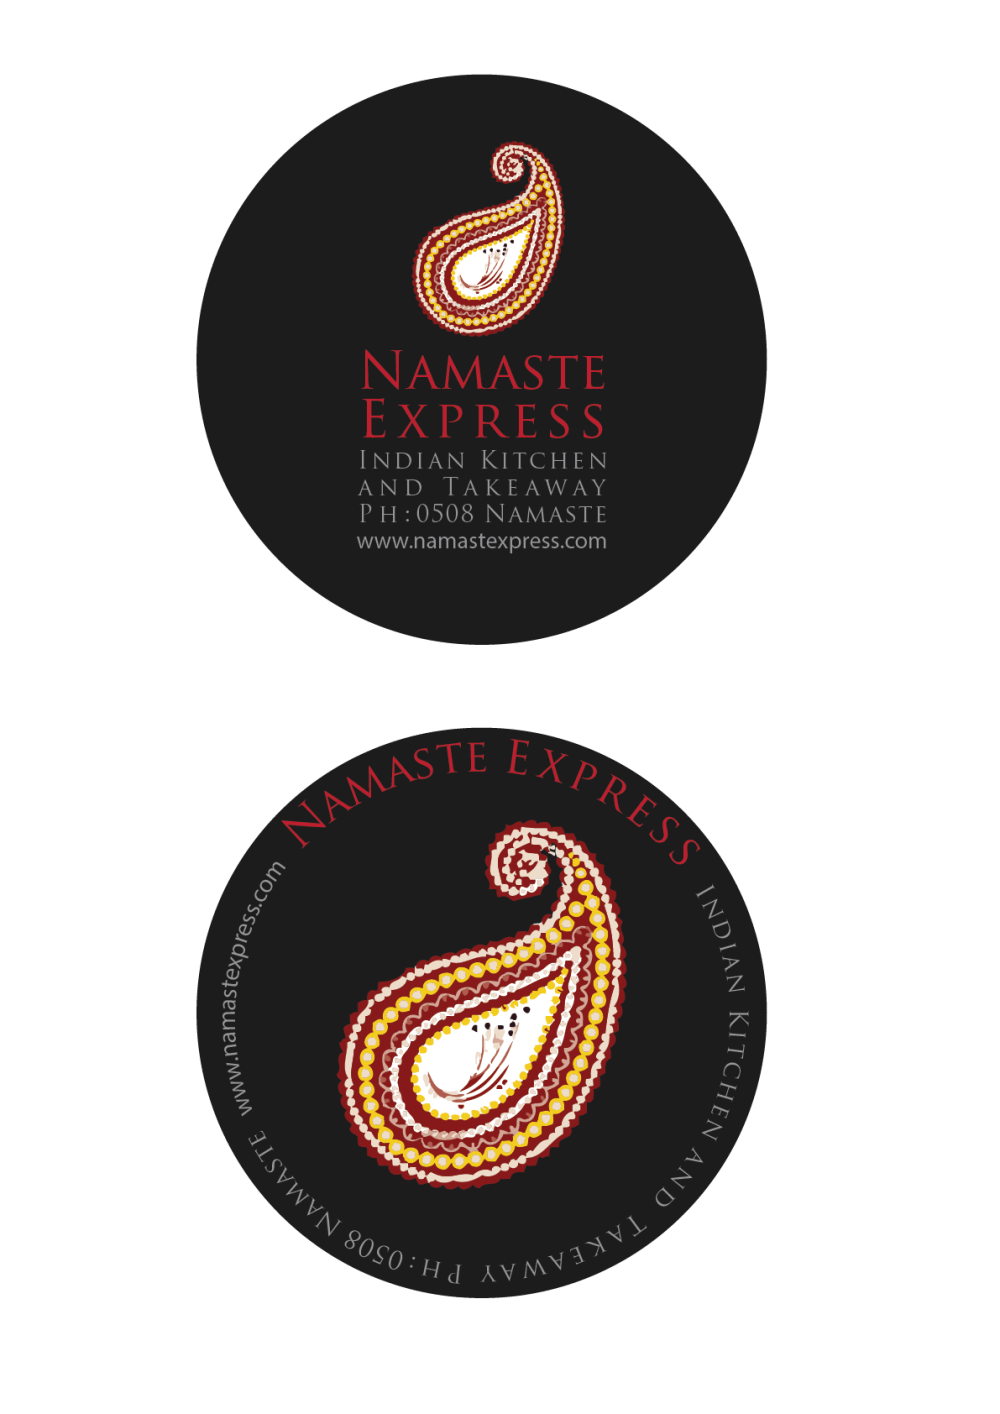 Namaste Express restaurant branding and hospitality design.